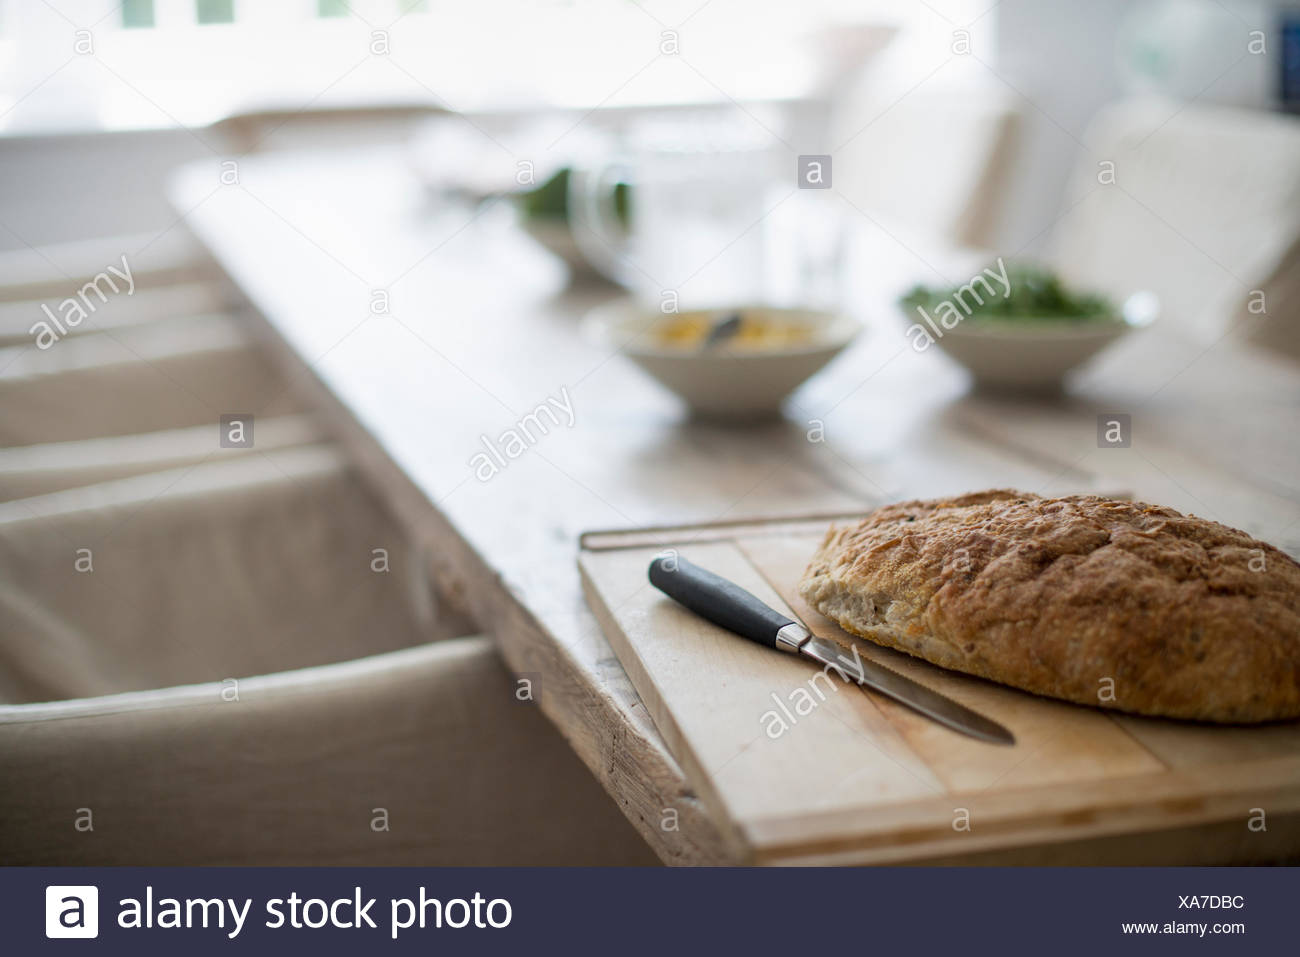 A house dining room. Food on the table. Baked bread. - Stock Image